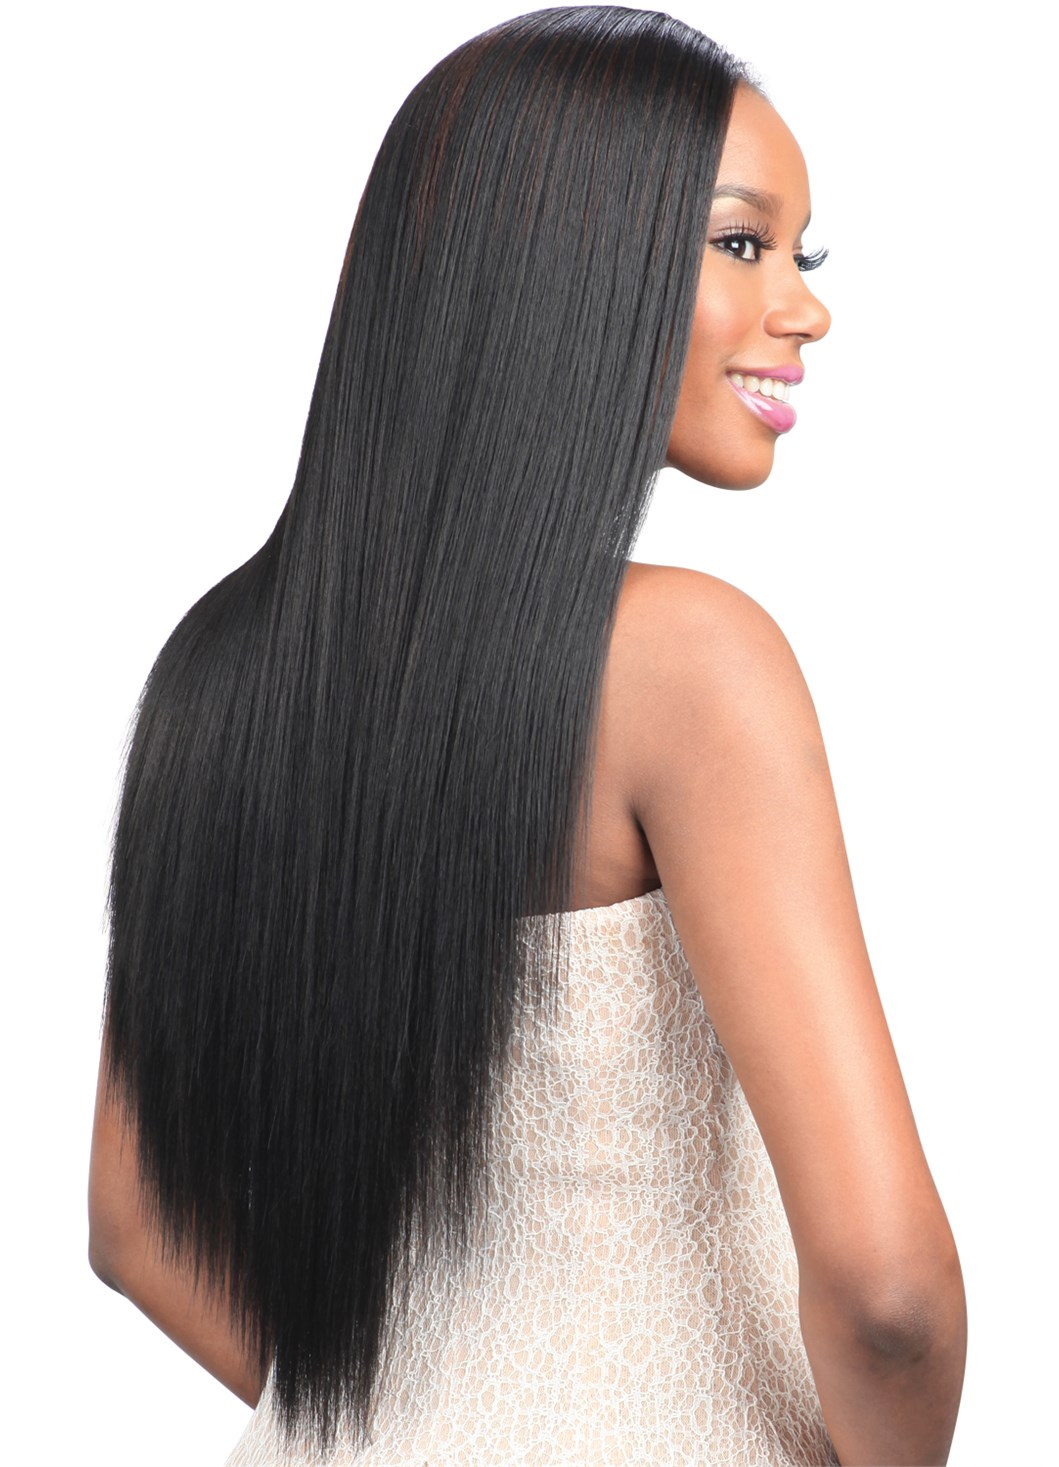 Model Model Pose Peruvian HYDRO Pressed YAKY Weave 7PCS 14 16 18